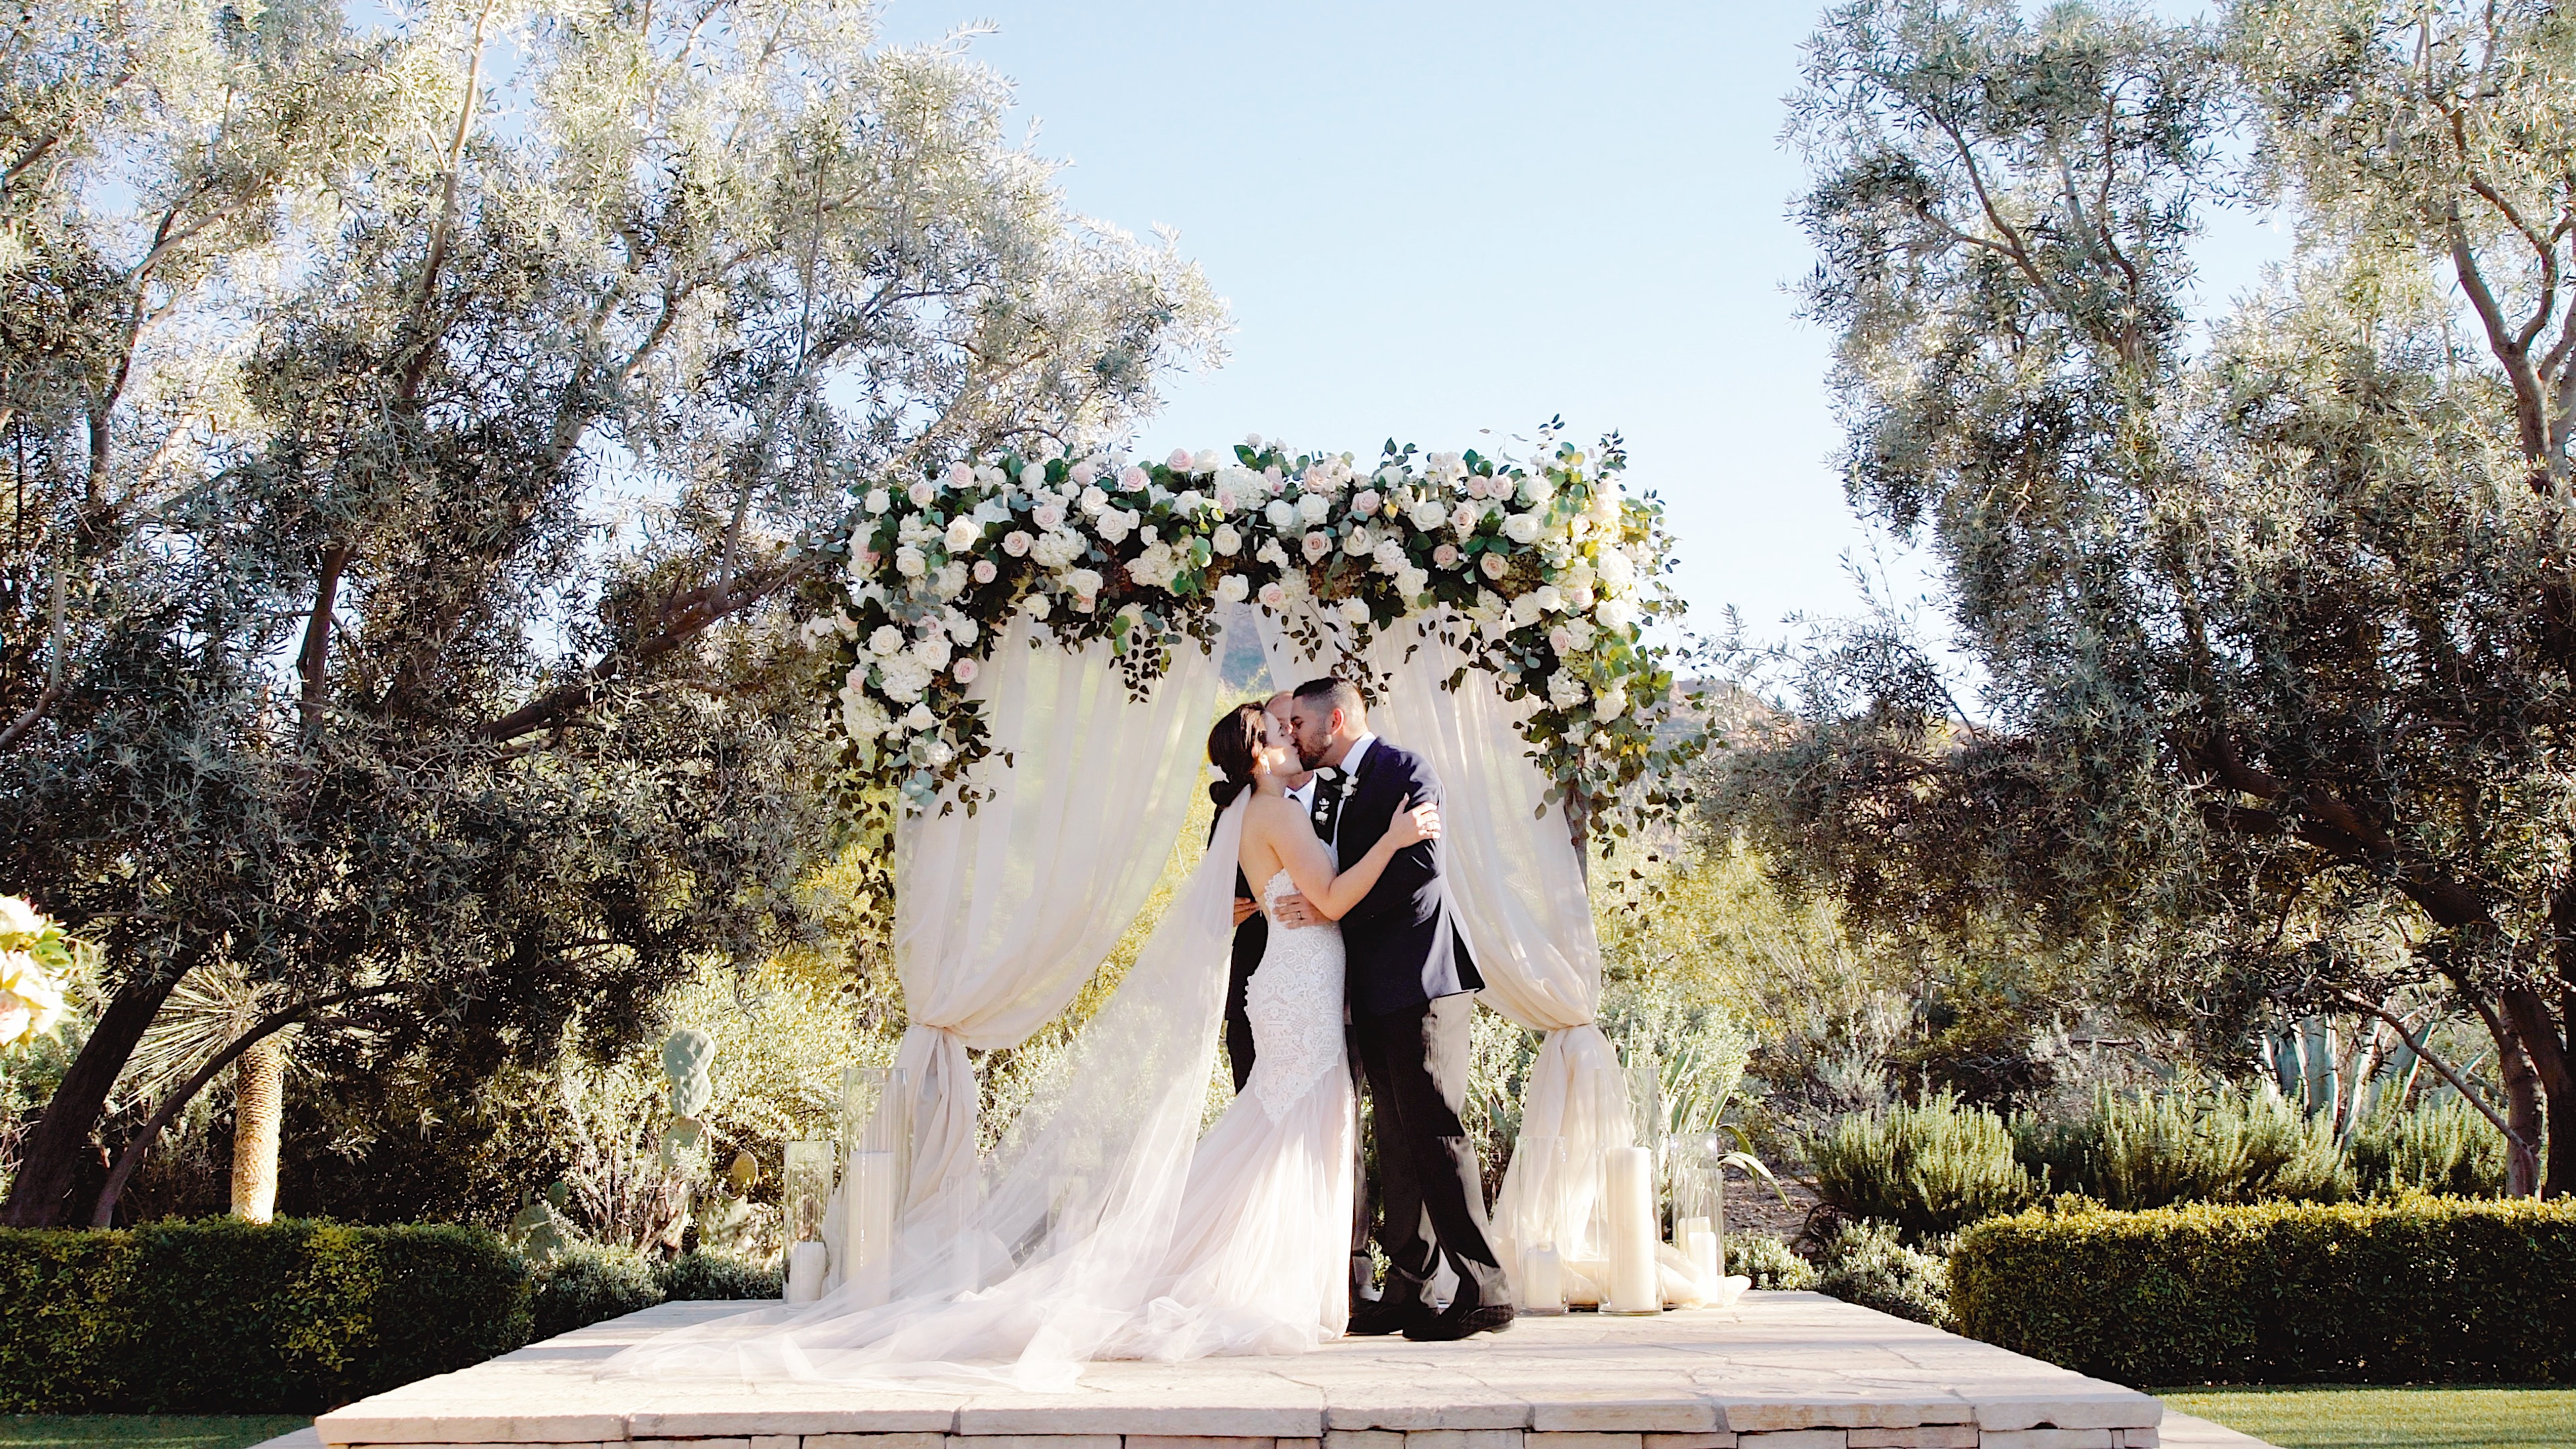 Candice + Drew | Paradise Valley, Arizona | El Chorro